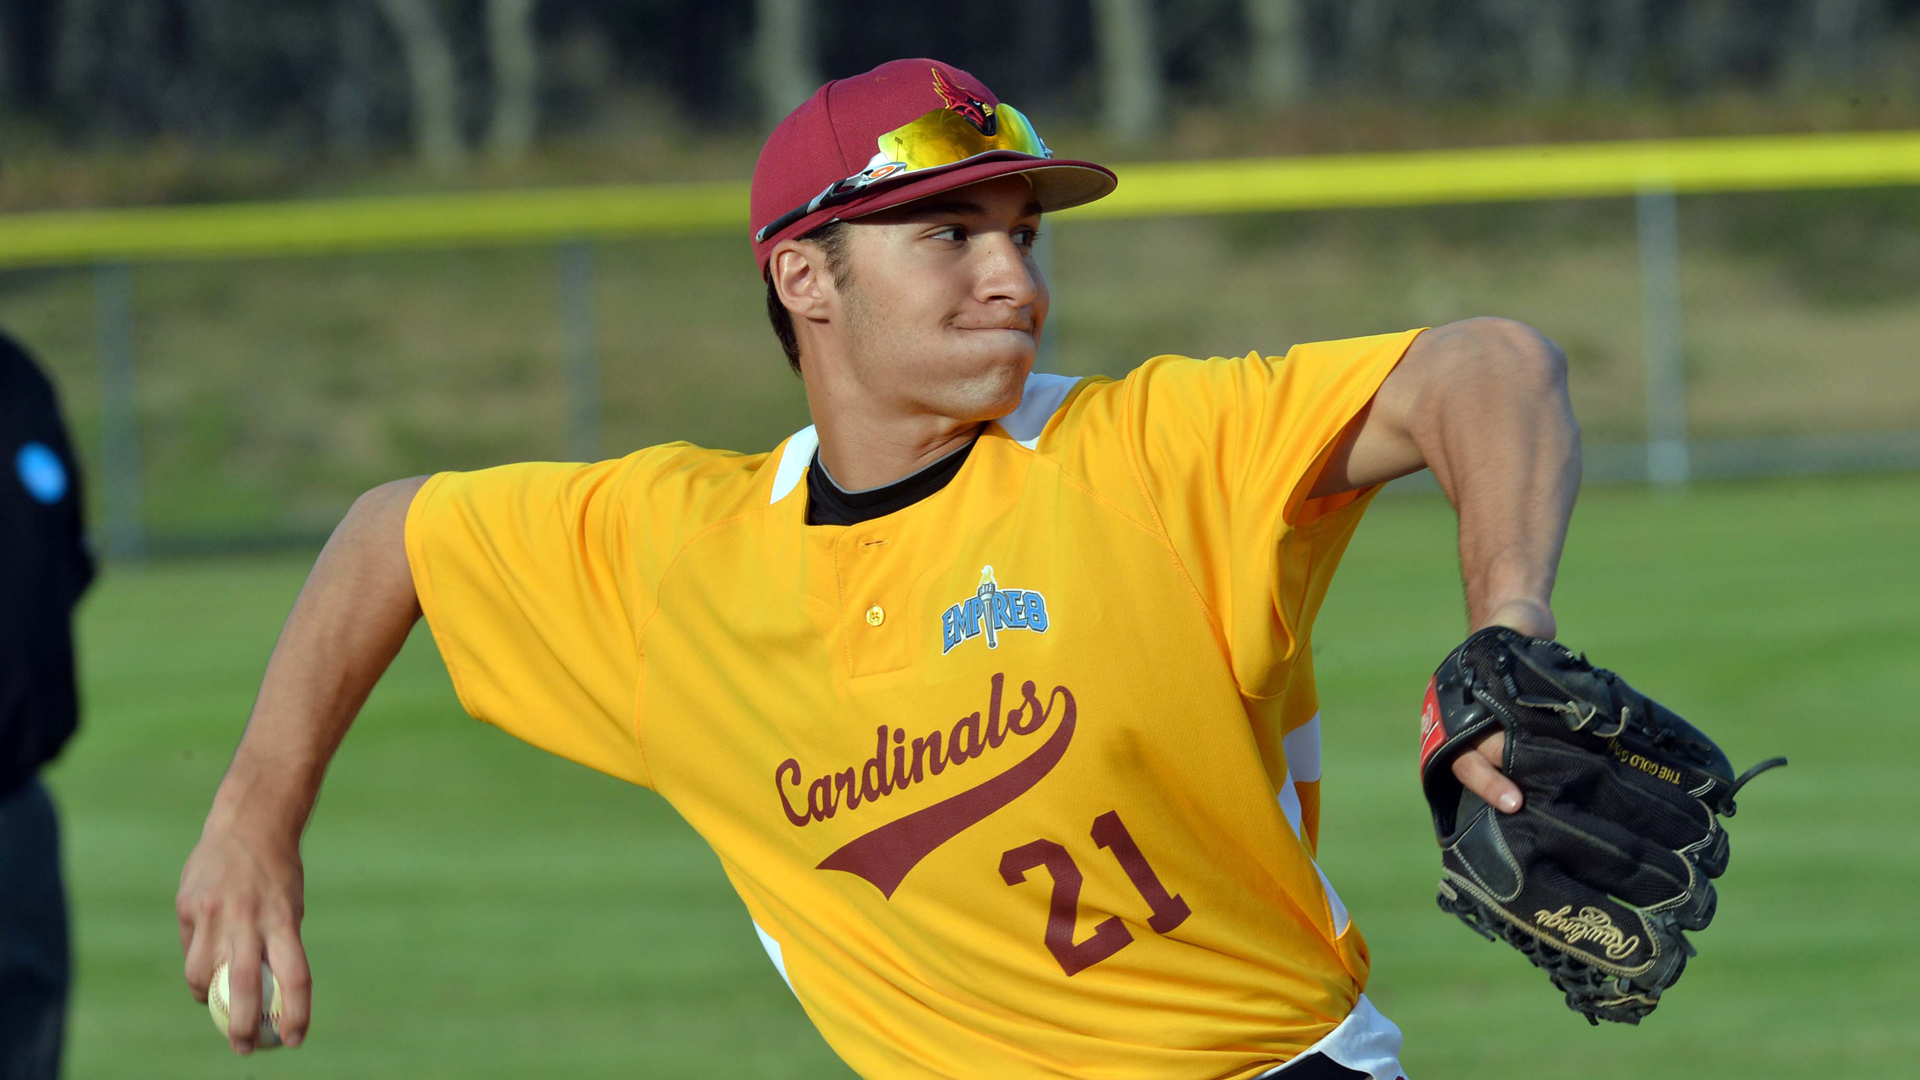 c61b9f8f68 Baseball Posts 2018 Schedule - St. John Fisher College Athletics